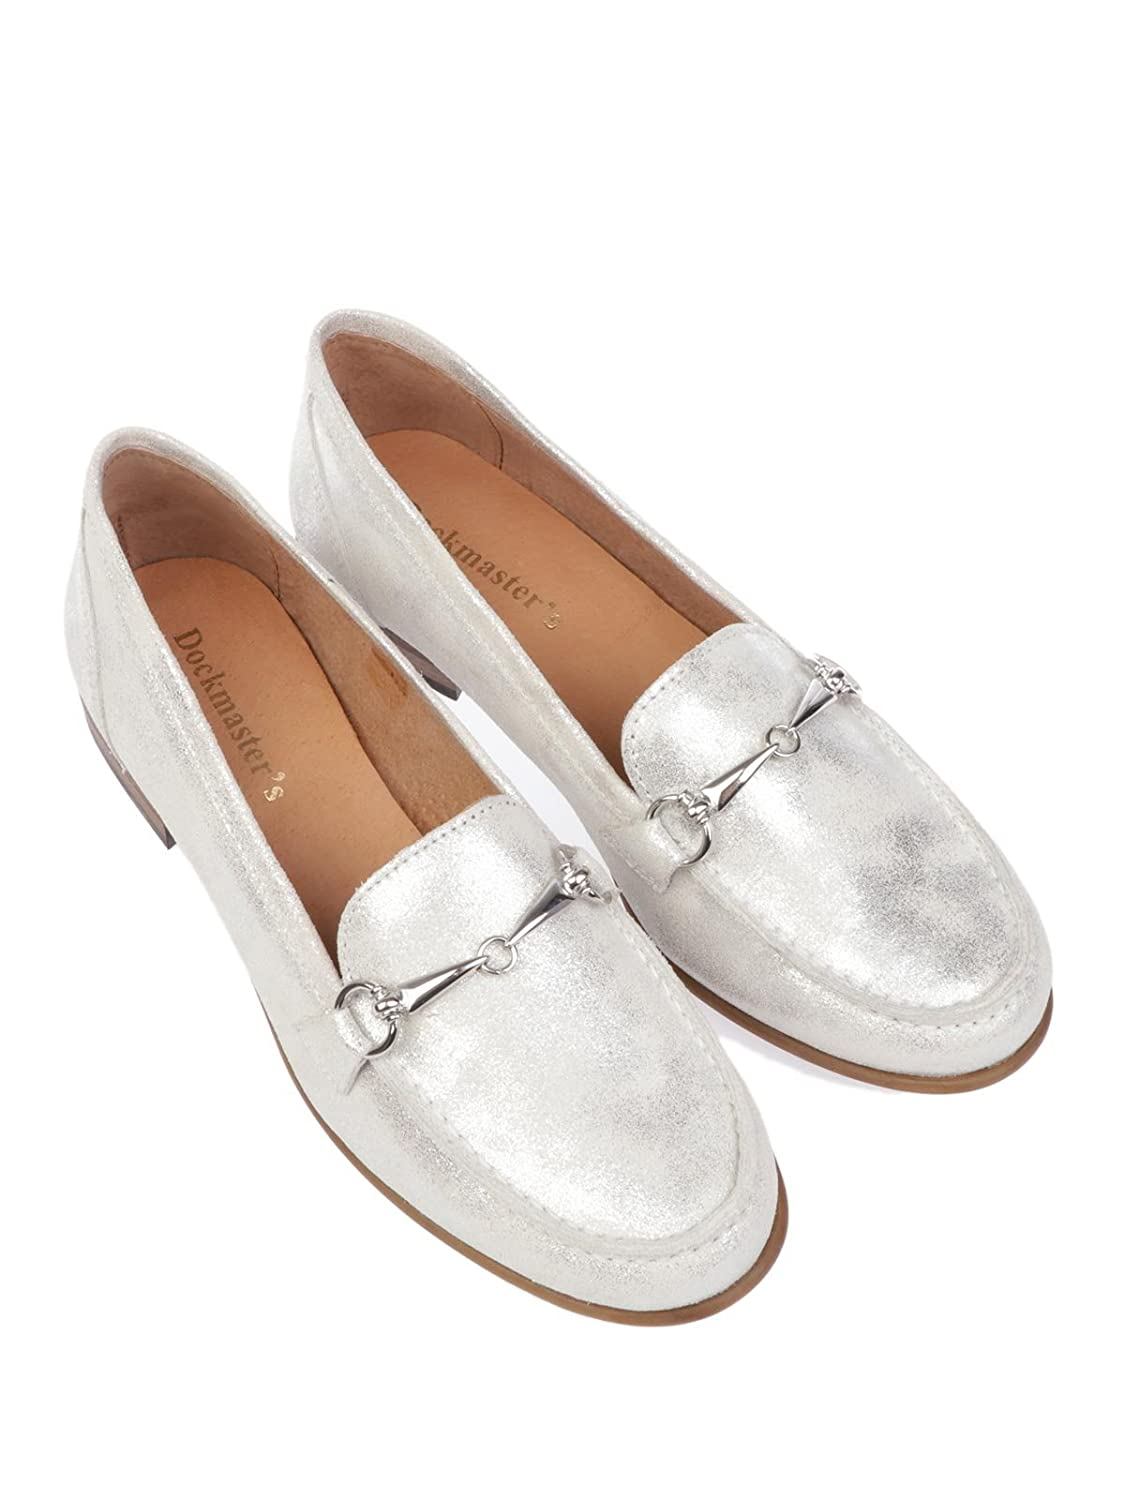 DOCK MASTERS Womens SHILABIANCO White Leather Loafers